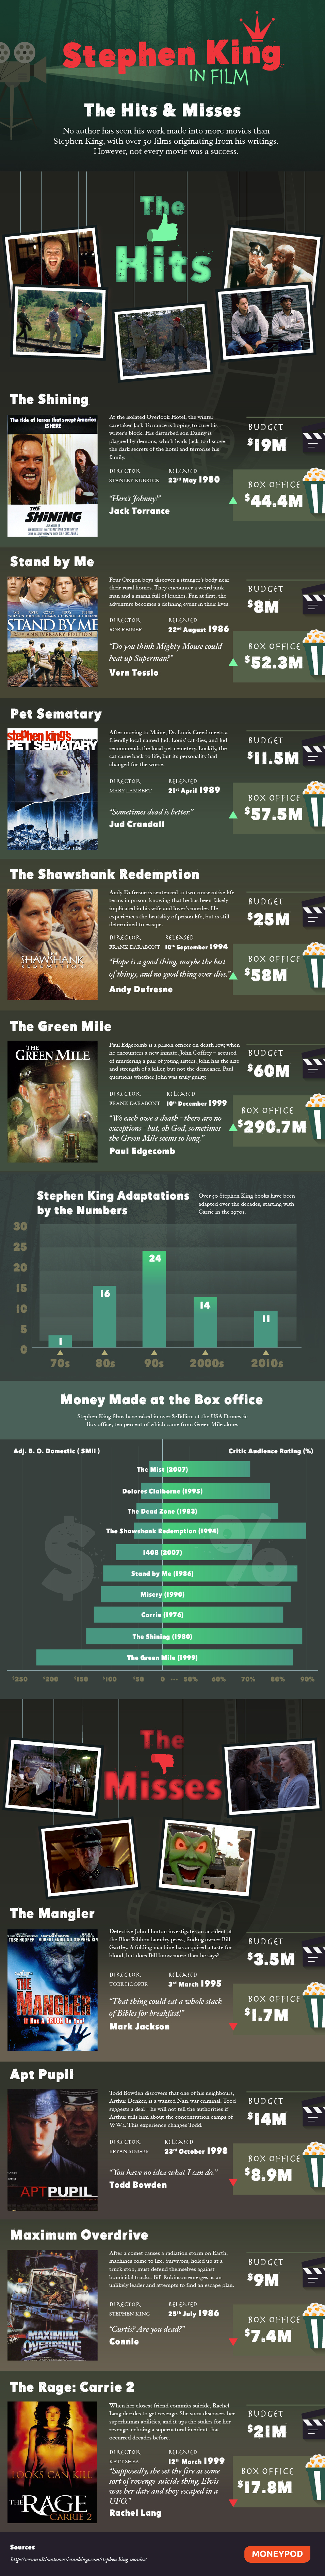 stephen king movie hits and misses